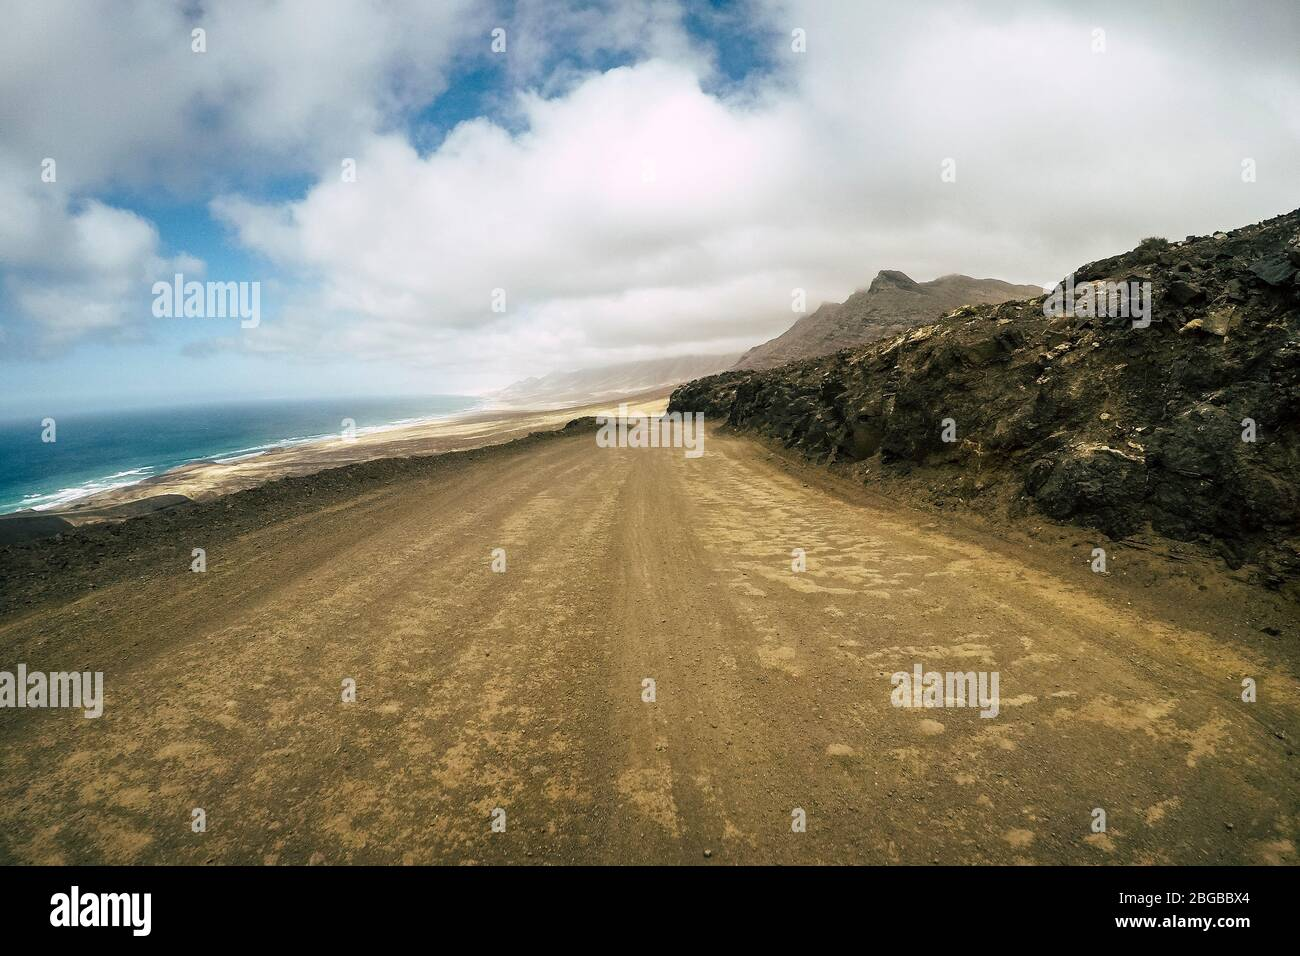 Off road ground view straight way and wild sand beach at the en in background - concept of adventure and alternative nature around lifestyle - tourism Stock Photo